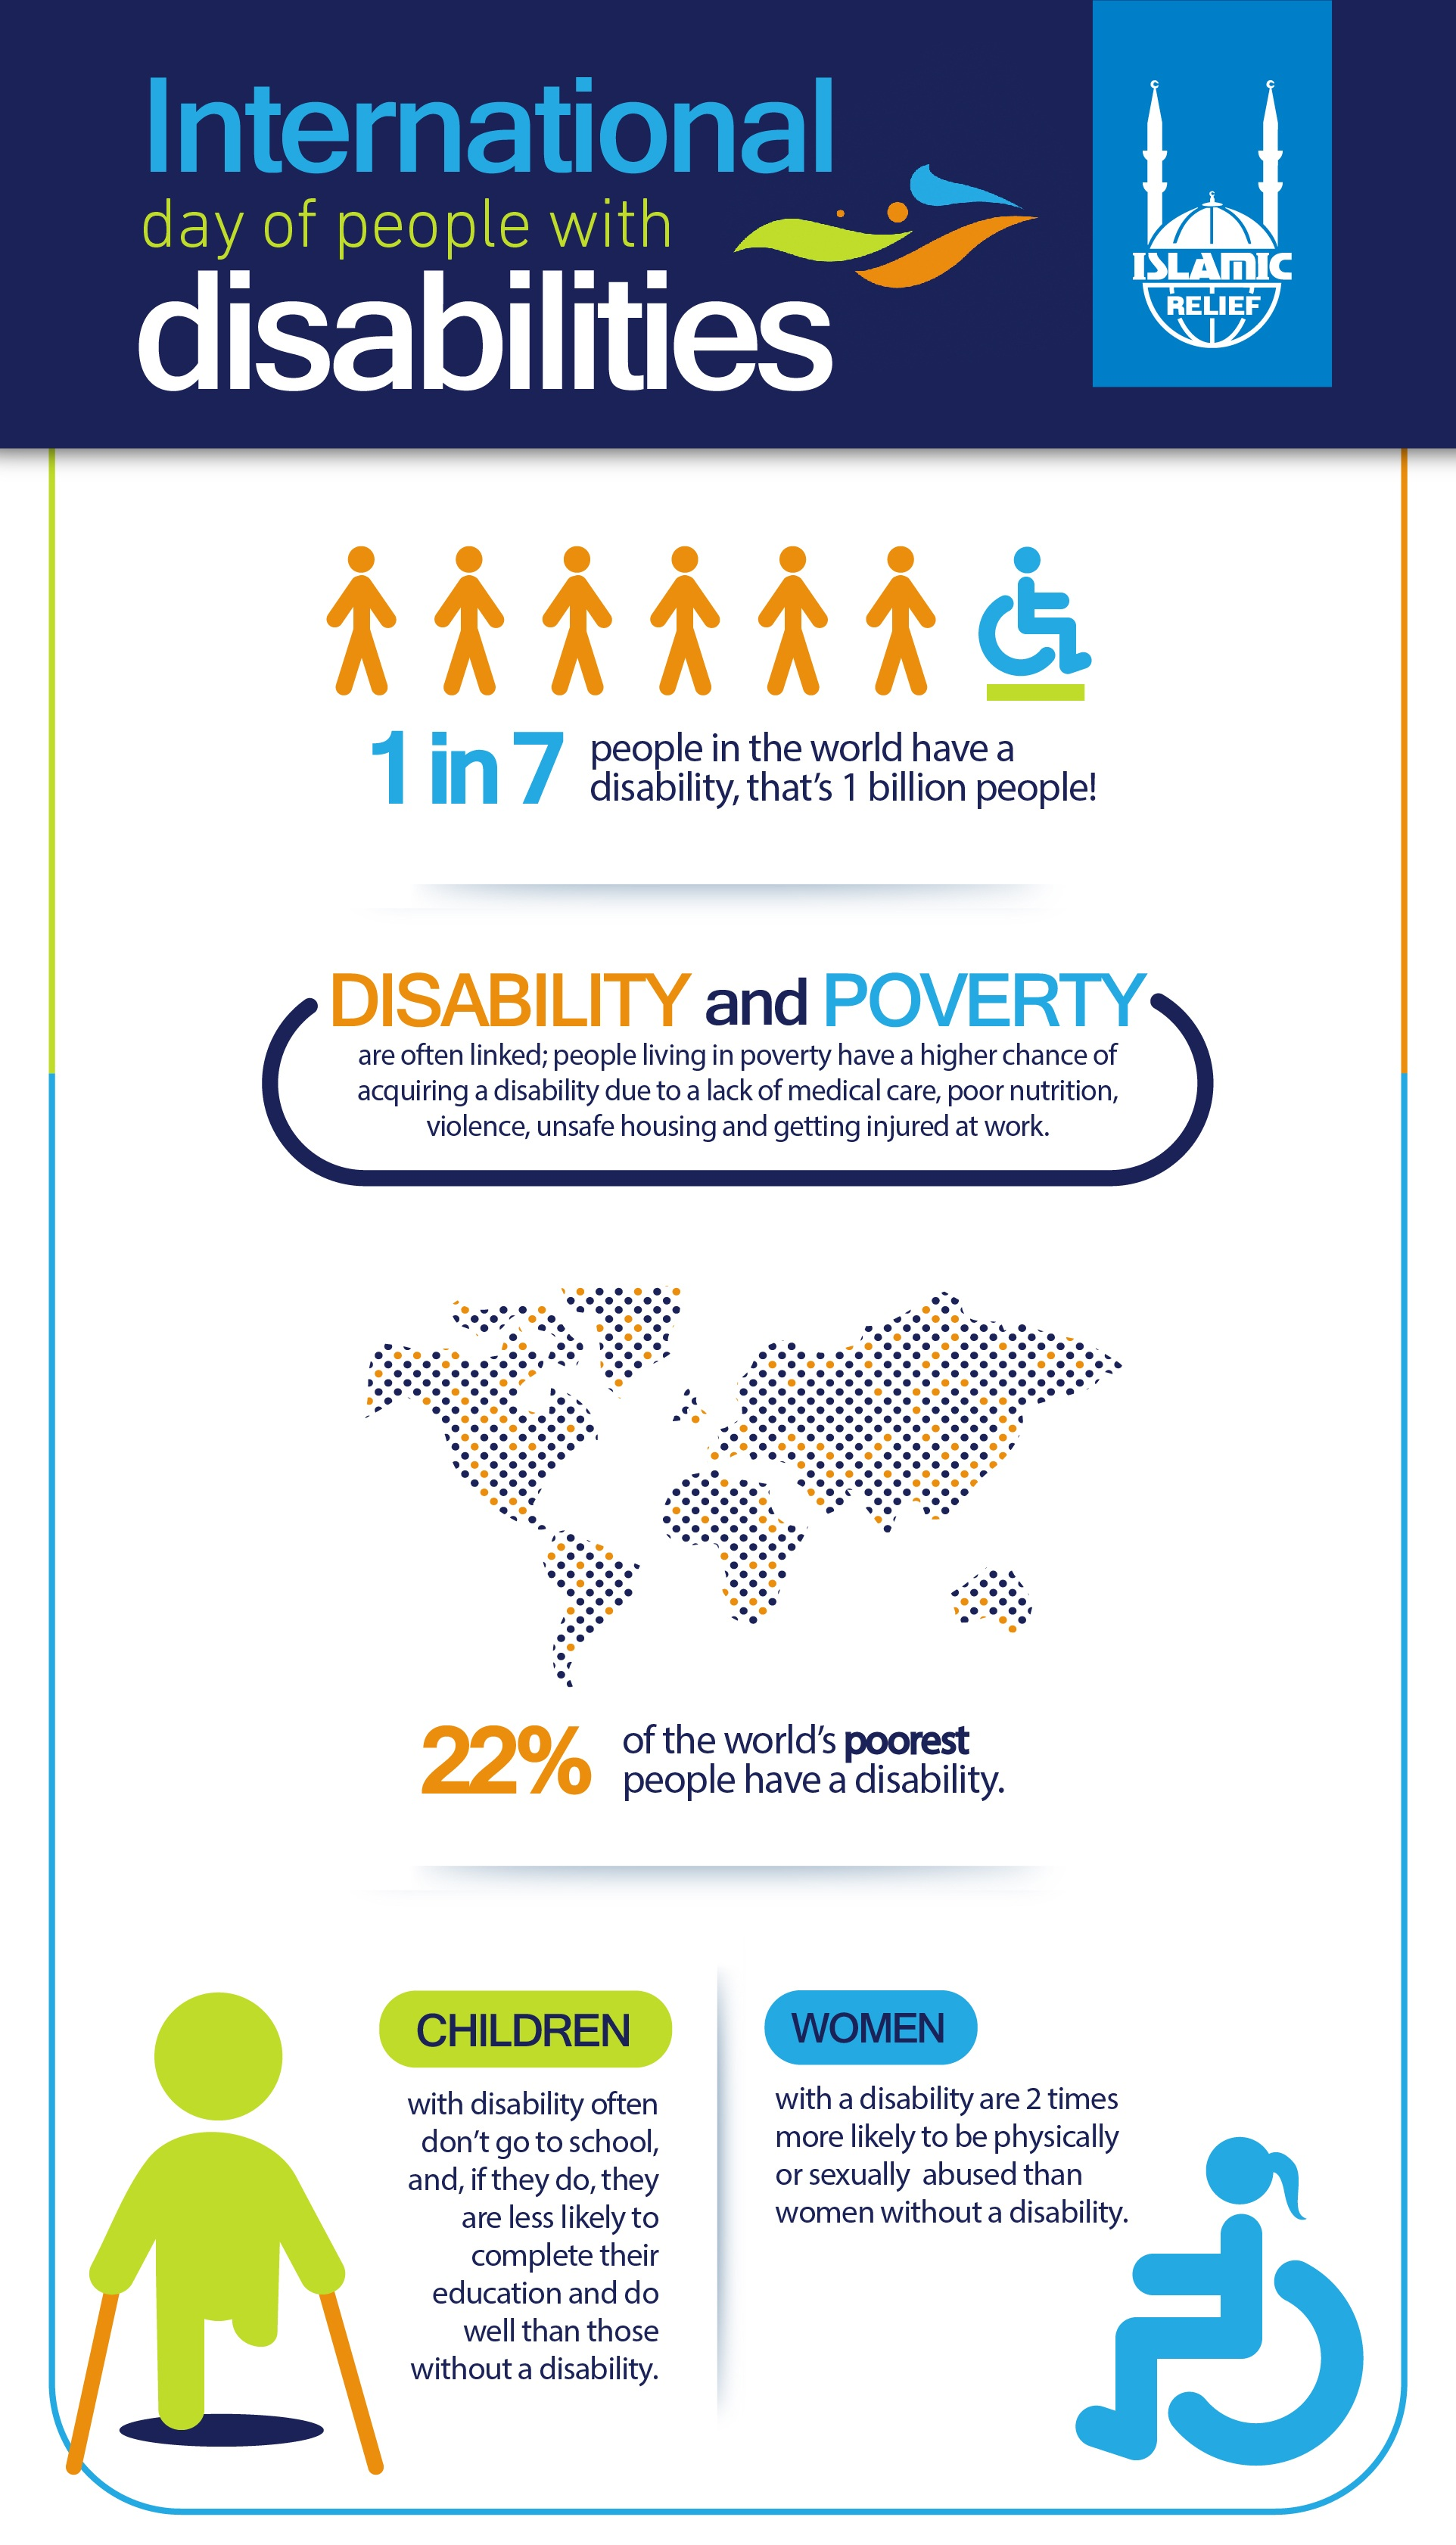 Living Beyond Disability Islamic Relief Worldwide